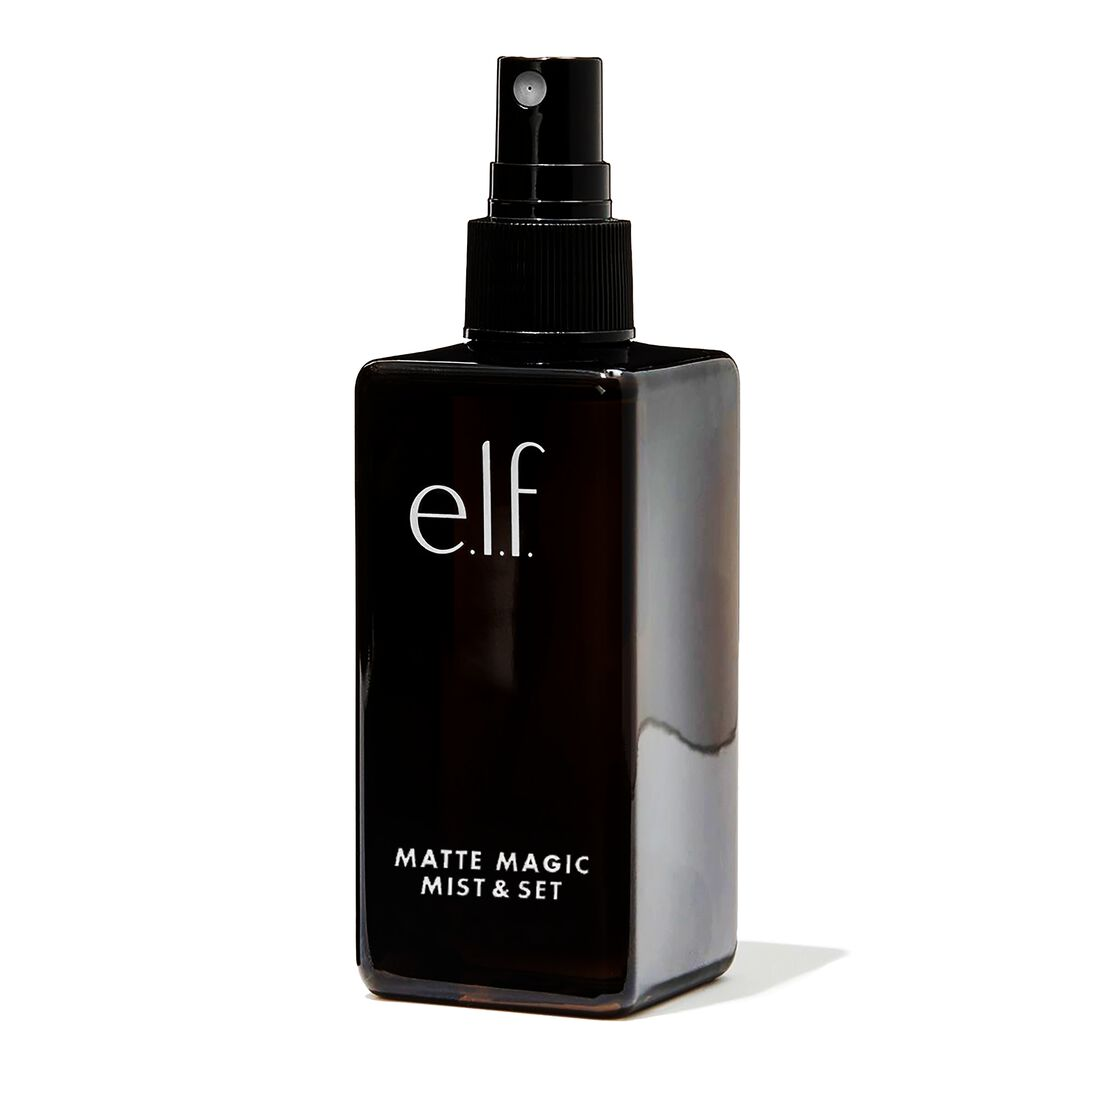 E.l.f Cosmetics - Matte Magic Mist & Set - Large